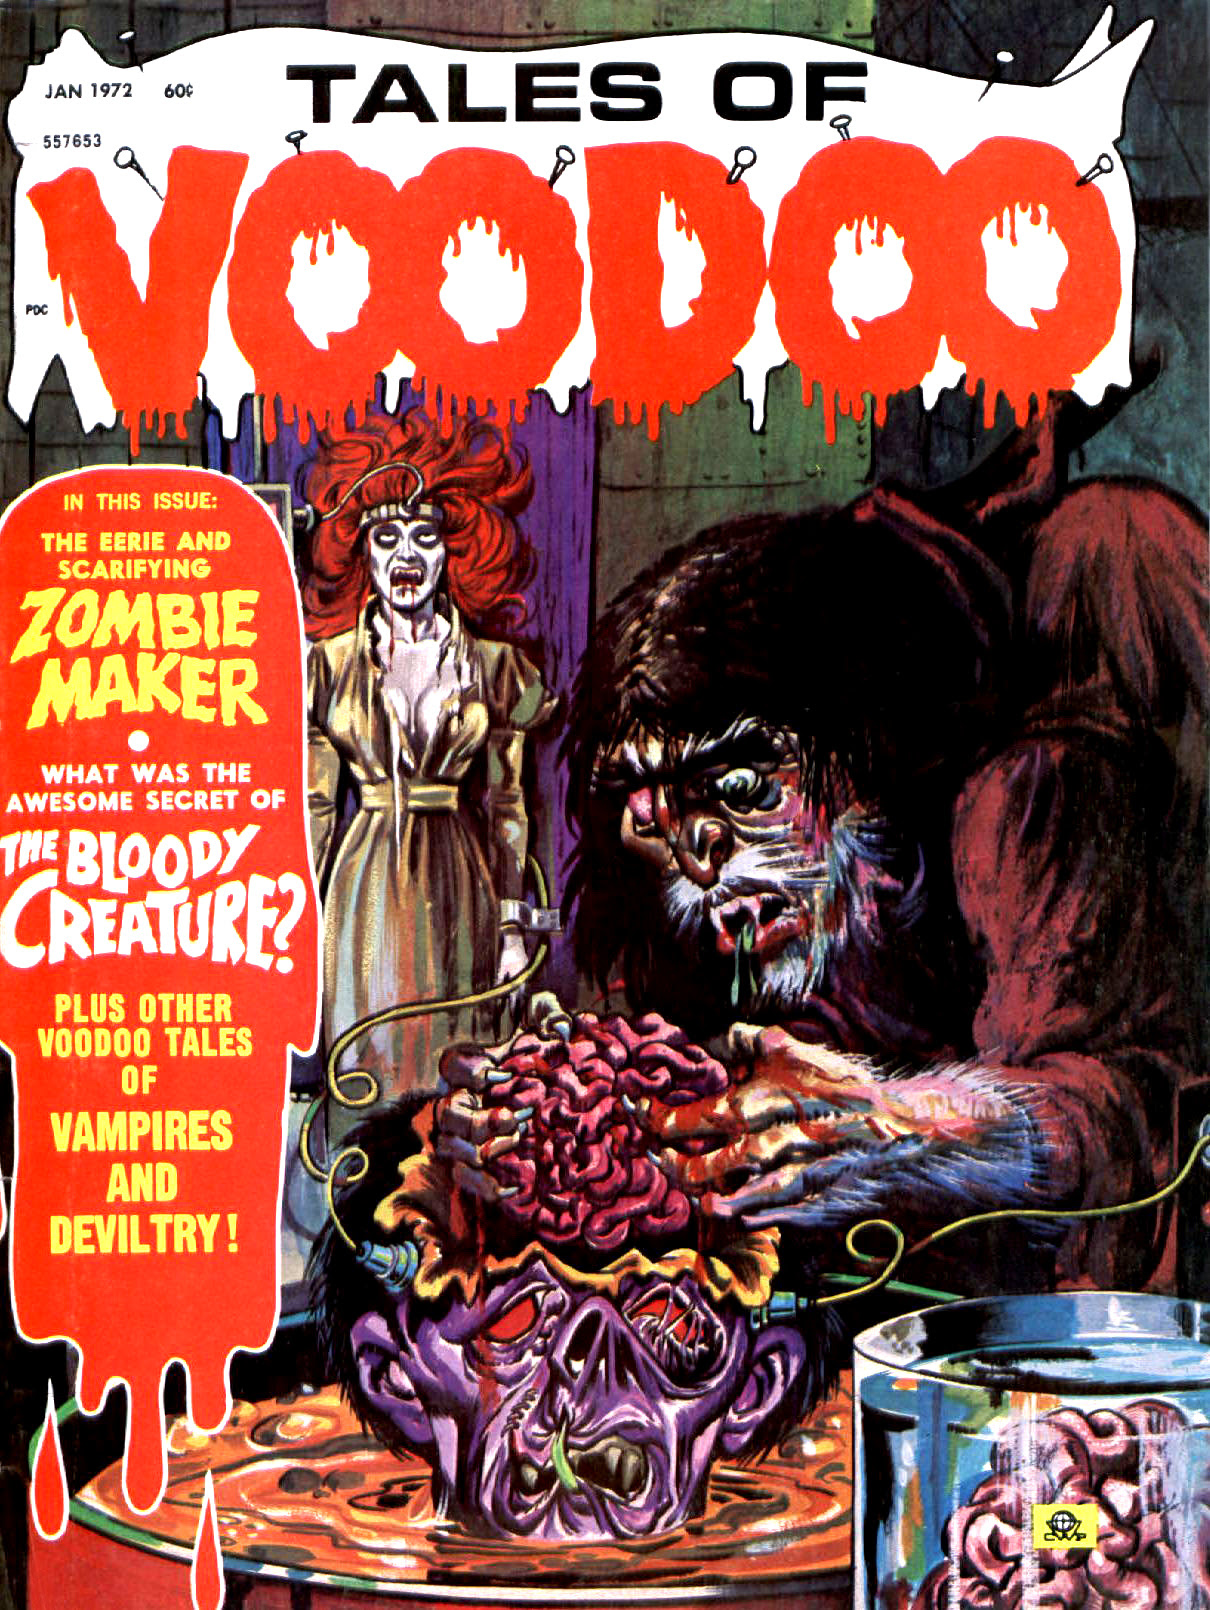 Tales of Voodoo Vol. 5 #1 (Eerie Publications 1972)